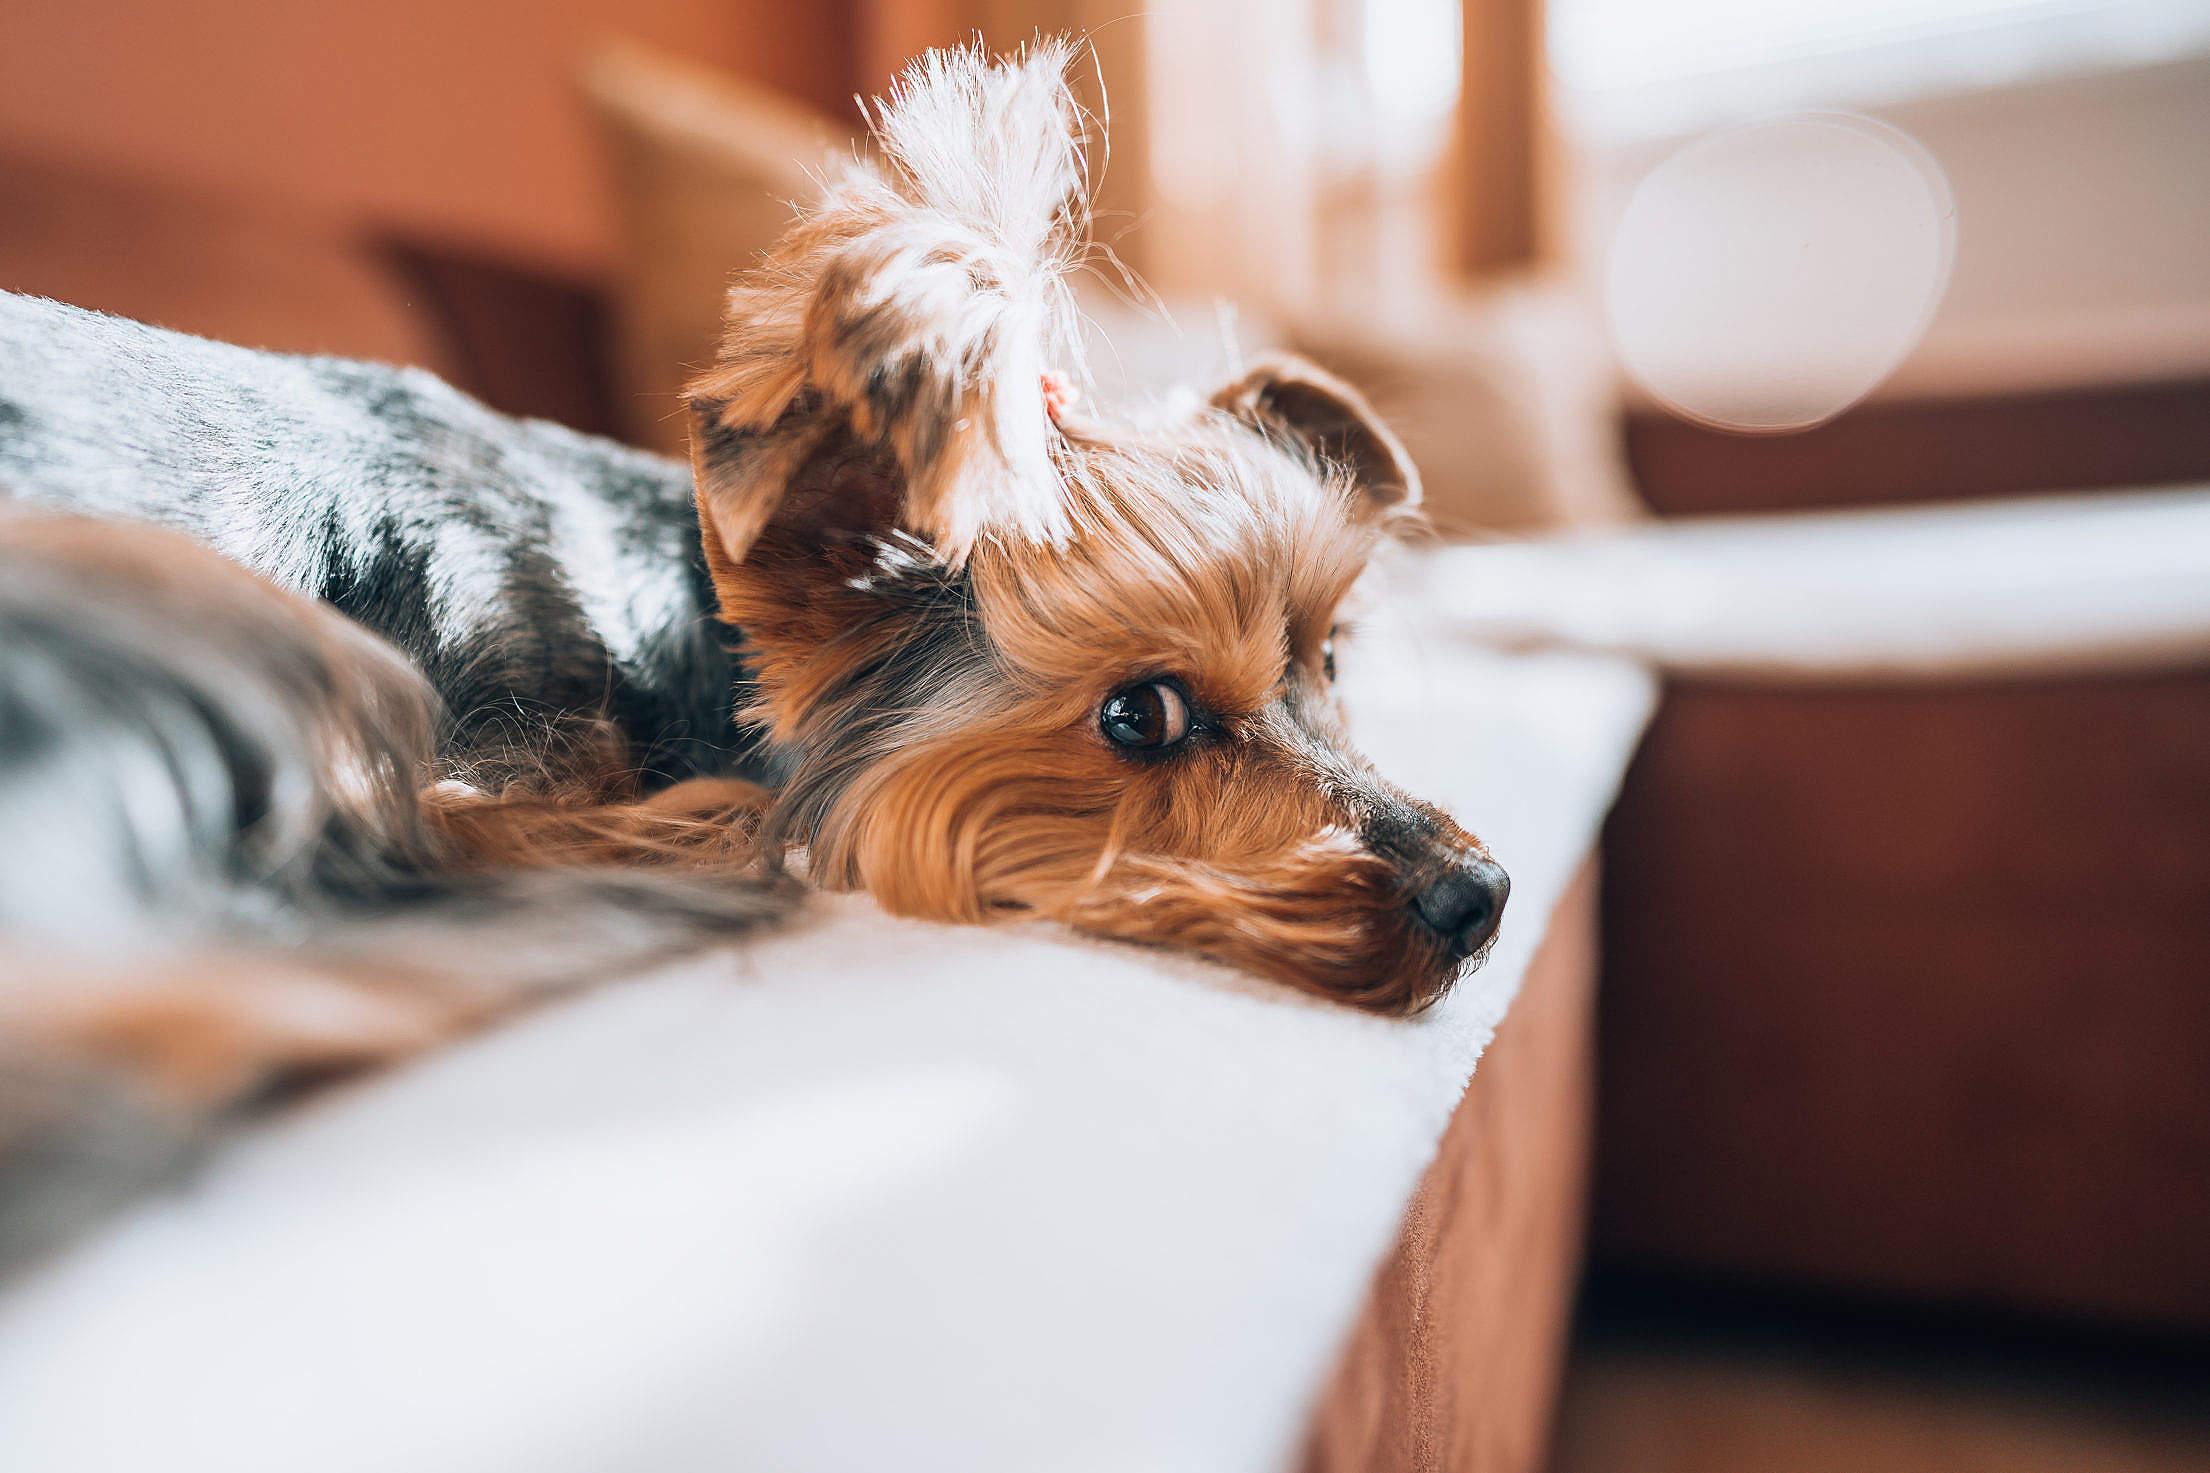 Cute Yorkshire-Terrier Relaxing on a Sofa in The Living Room Free Stock Photo